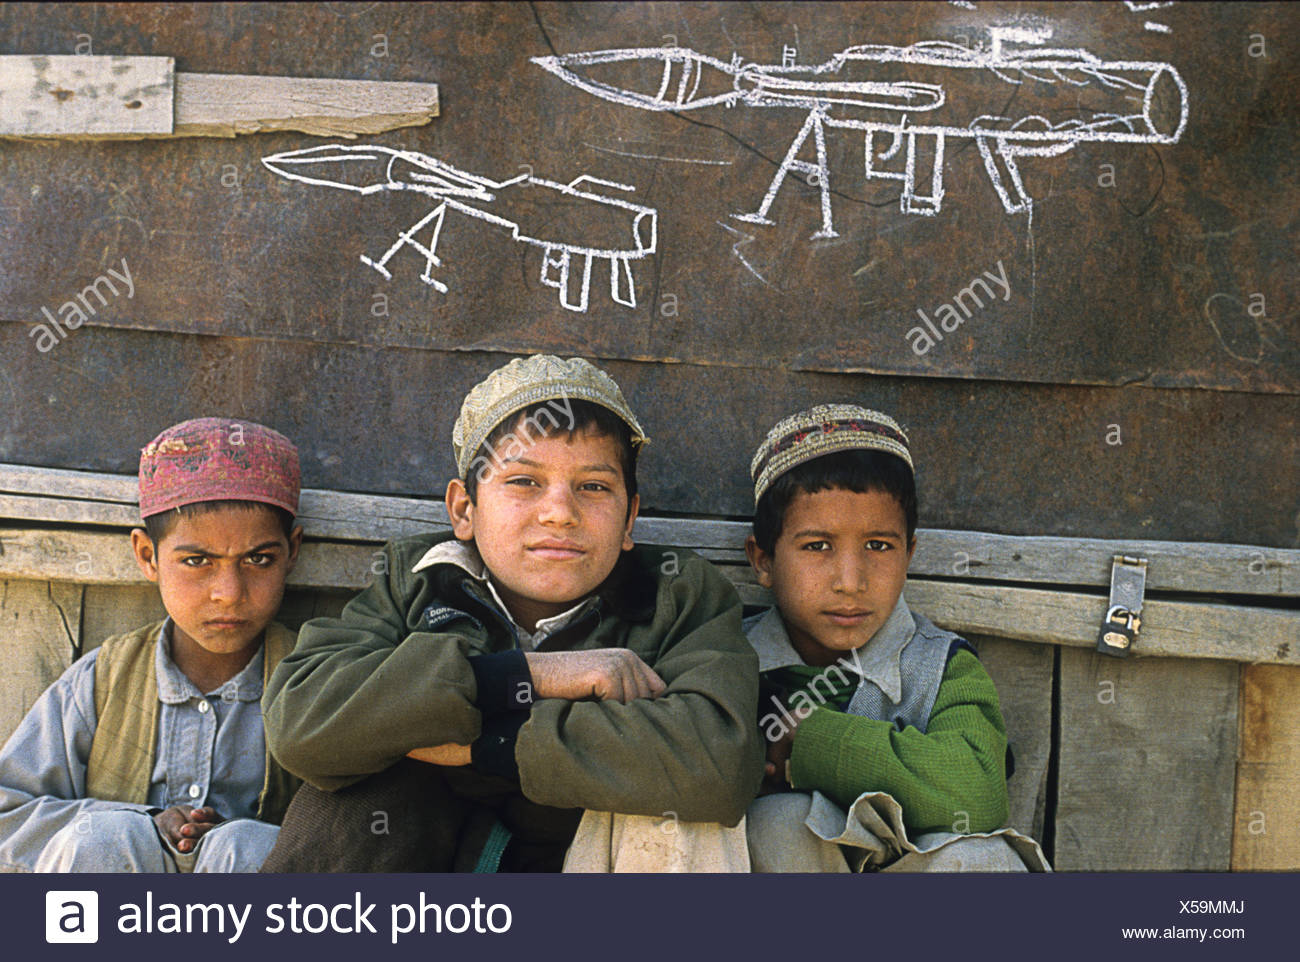 Three Afghan refugee boys sit in front of a chalk drawing of an RPG. - Stock Image